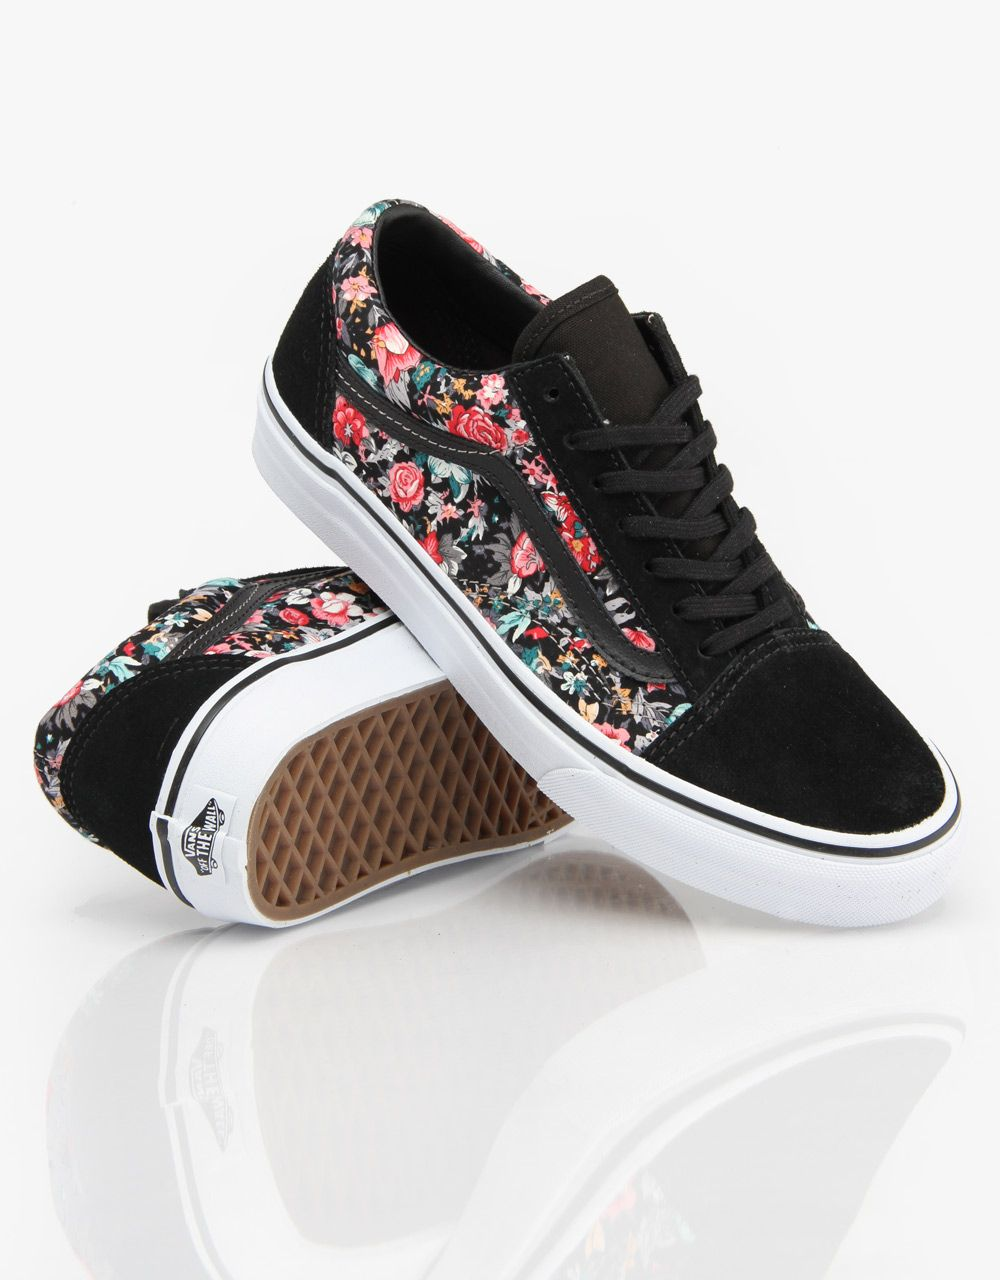 Vans Old Skool Girls Skate Shoes moda style estilo street urban ronantic  Black preto authentic